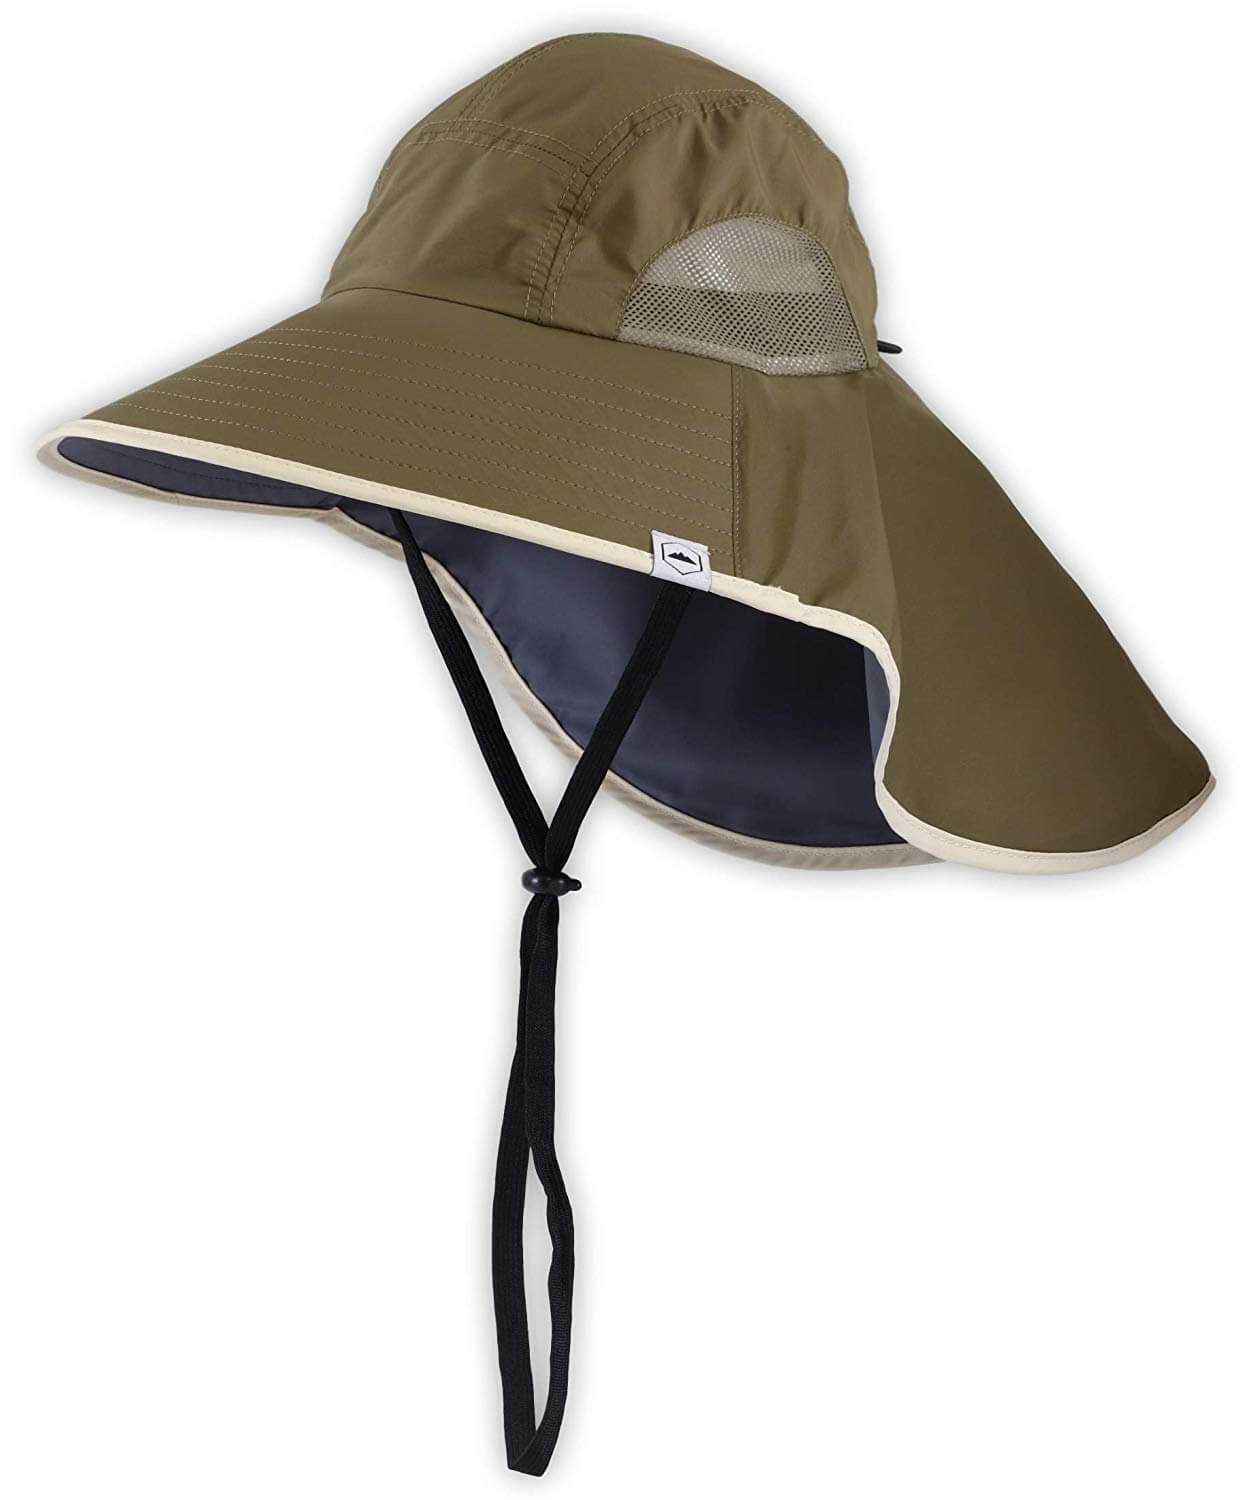 6 Boonie gardening Hat with UV Protection - UPF 50 Outdoor Bucket Hat